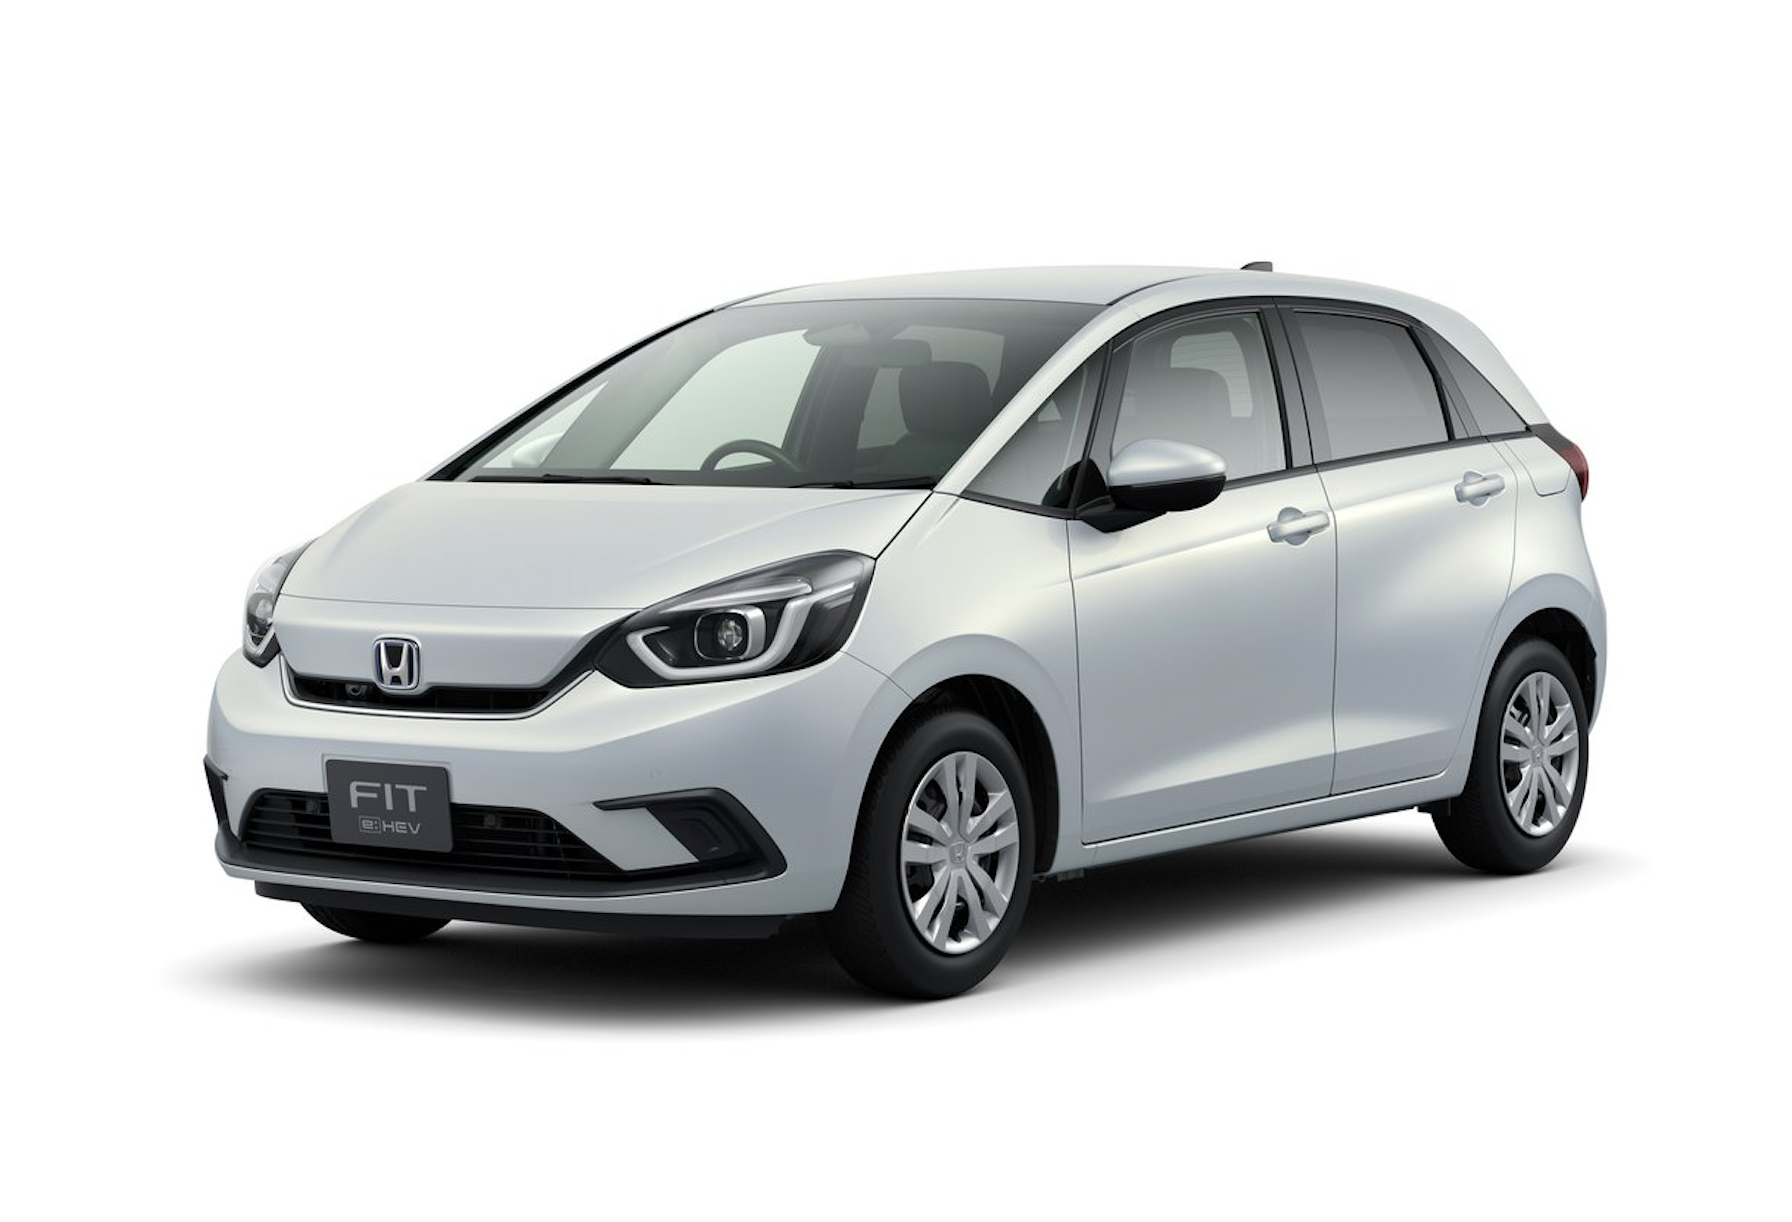 New Honda Fit 1 3 G F Package A For Sale Online In Singapore Ucars